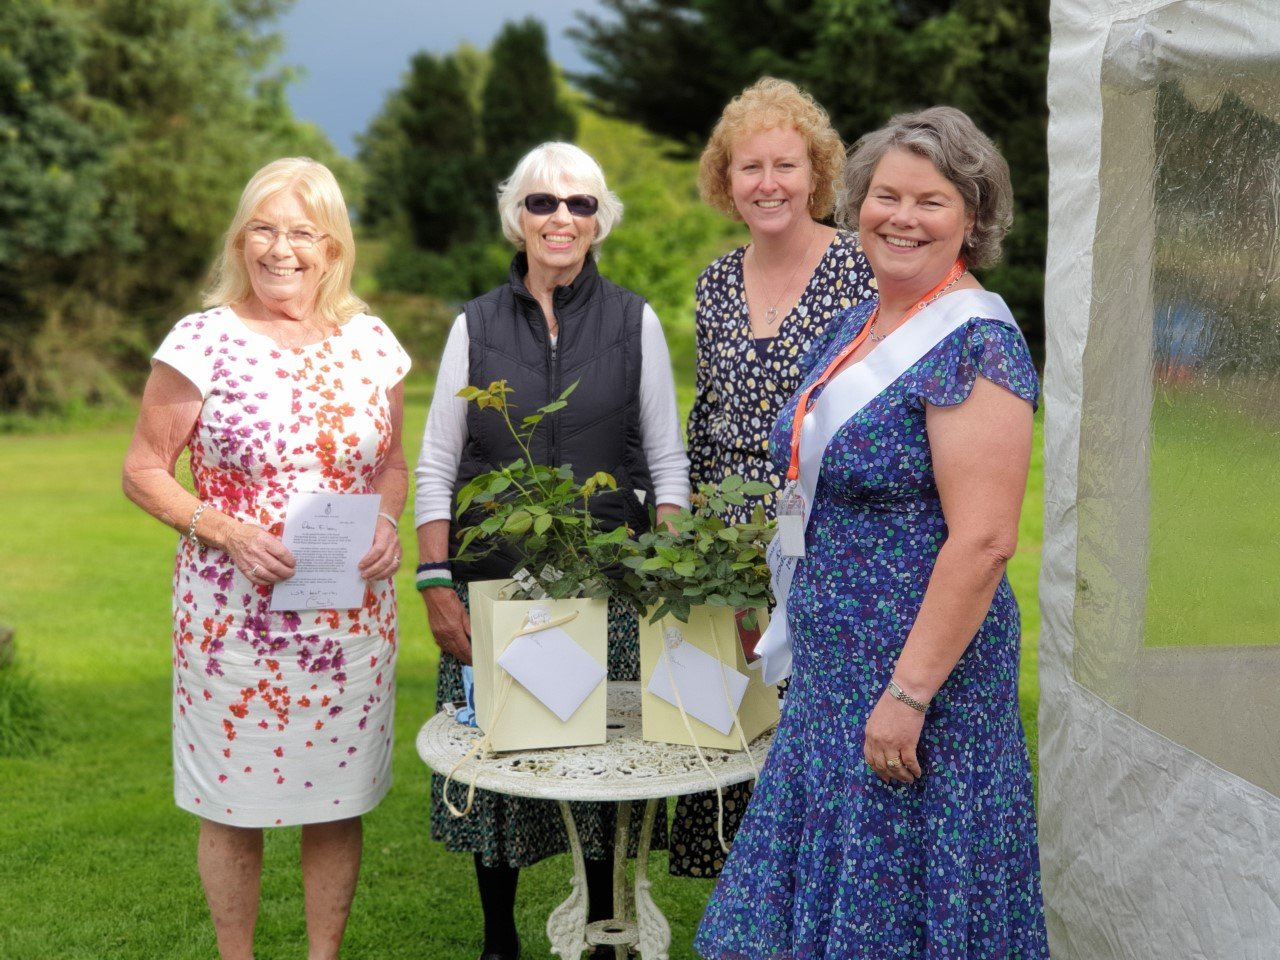 Wirral osteoporosis support group celebrates turning 30